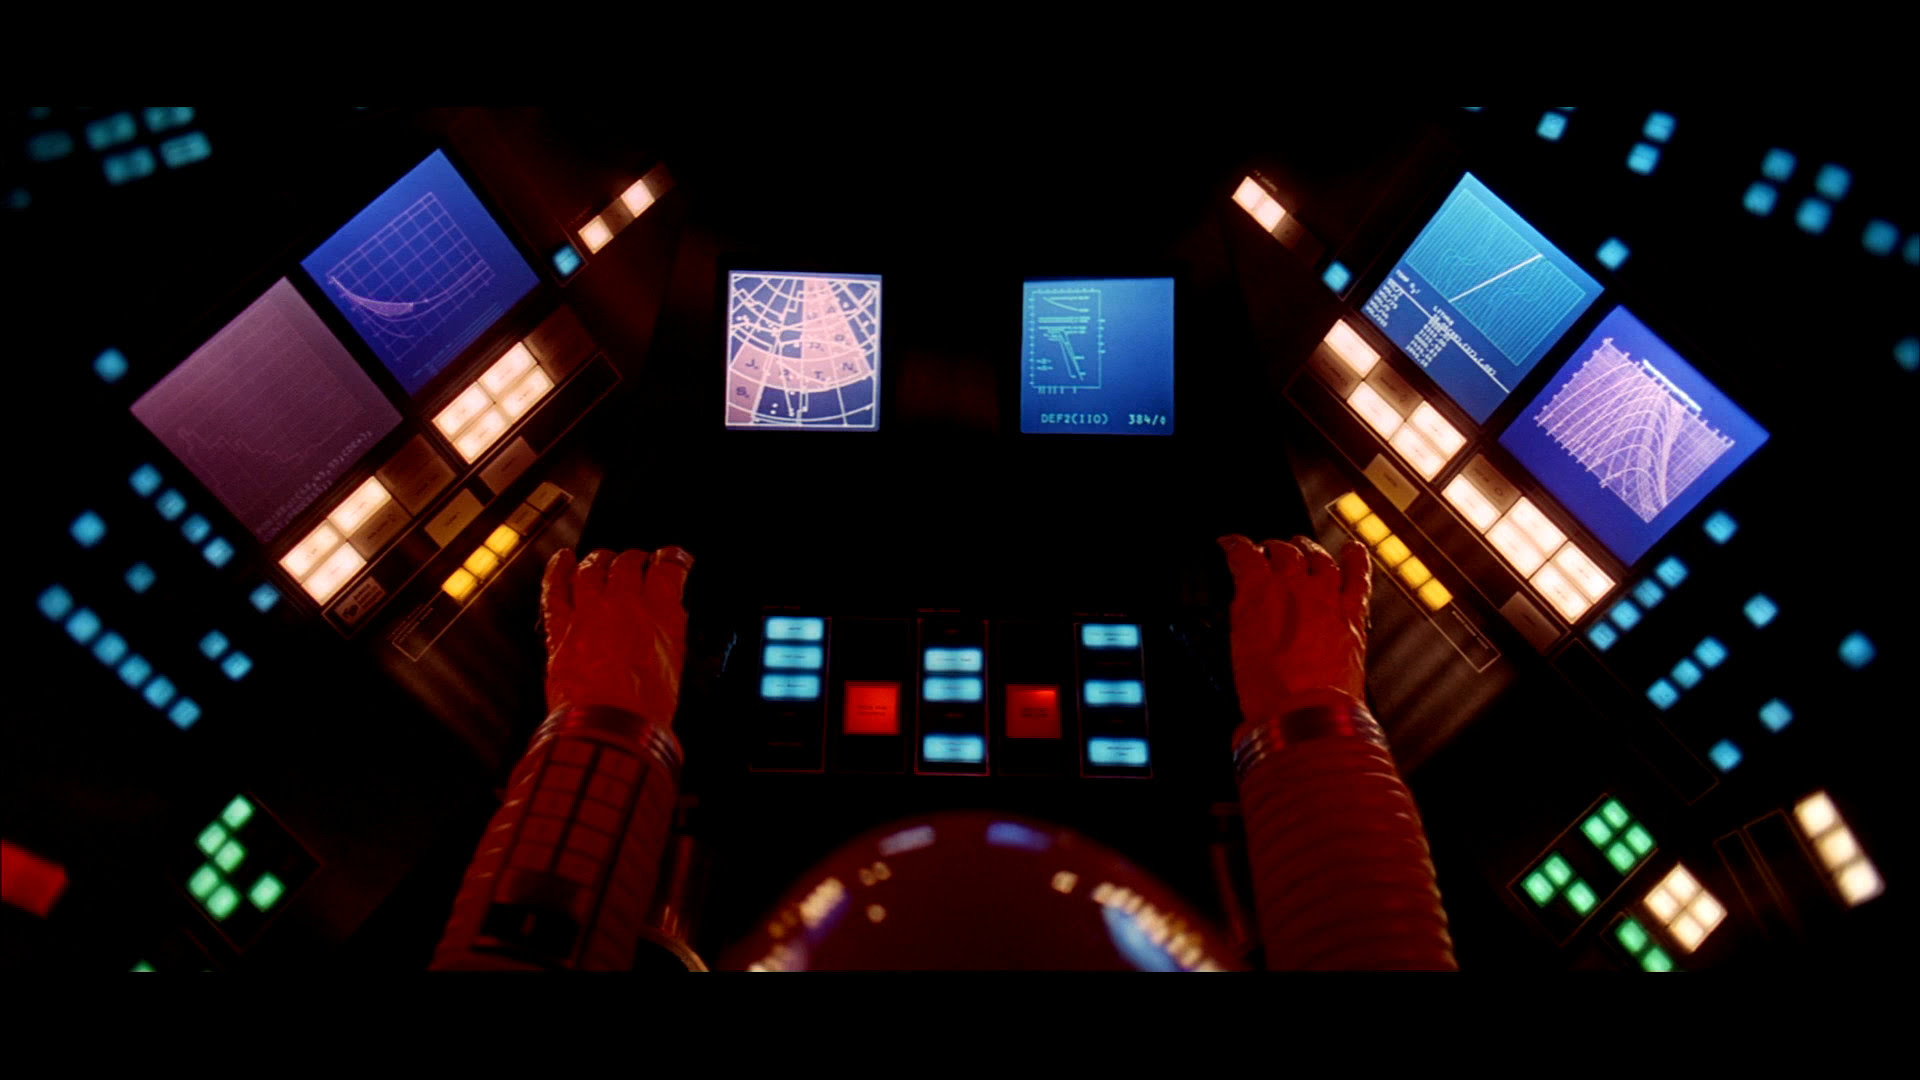 2001 Space Odyssey Wallpaper 81 Images